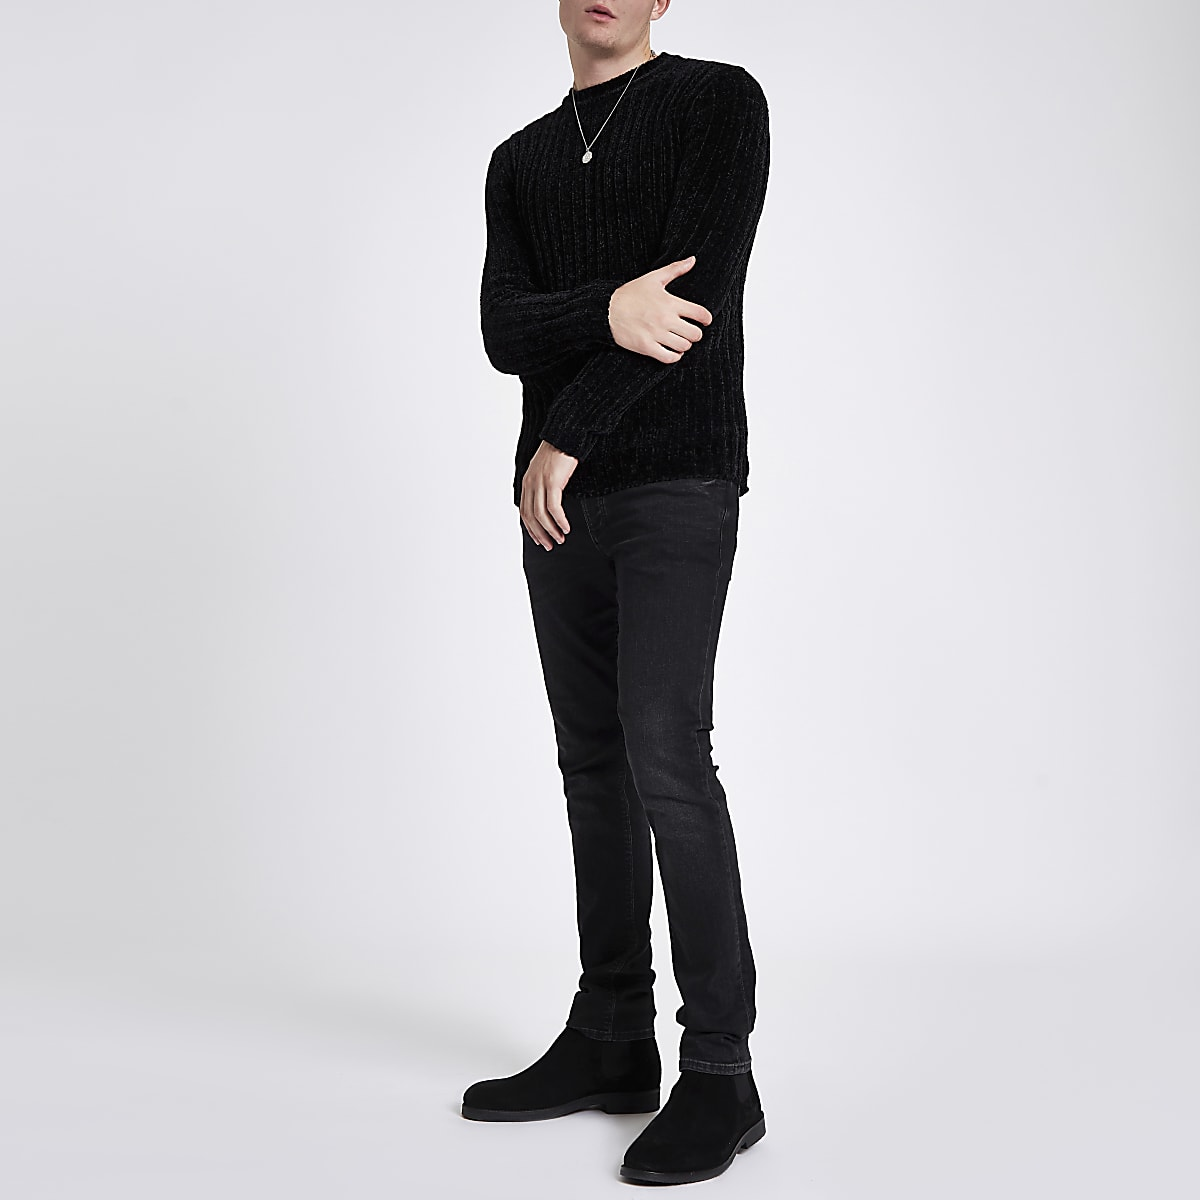 259a11023bacd5 Black muscle fit chenille knit sweater Black muscle fit chenille knit  sweater ...